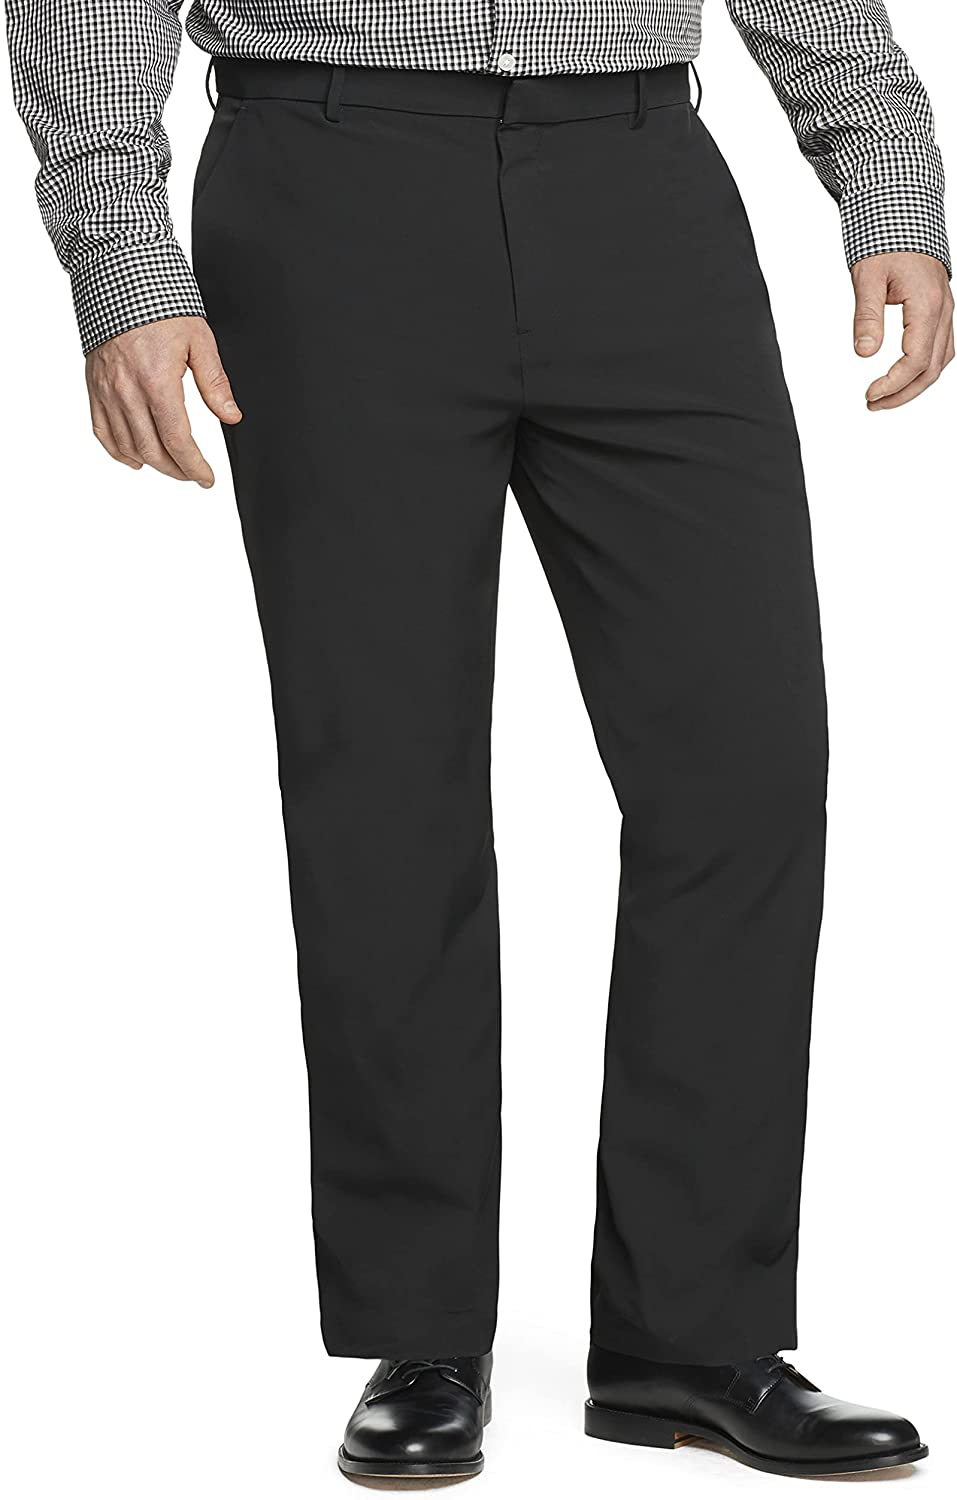 Van Heusen Men's Big & Tall Big and Tall Stain Shield Stretch Straight Fit Flat Front Dress Pant